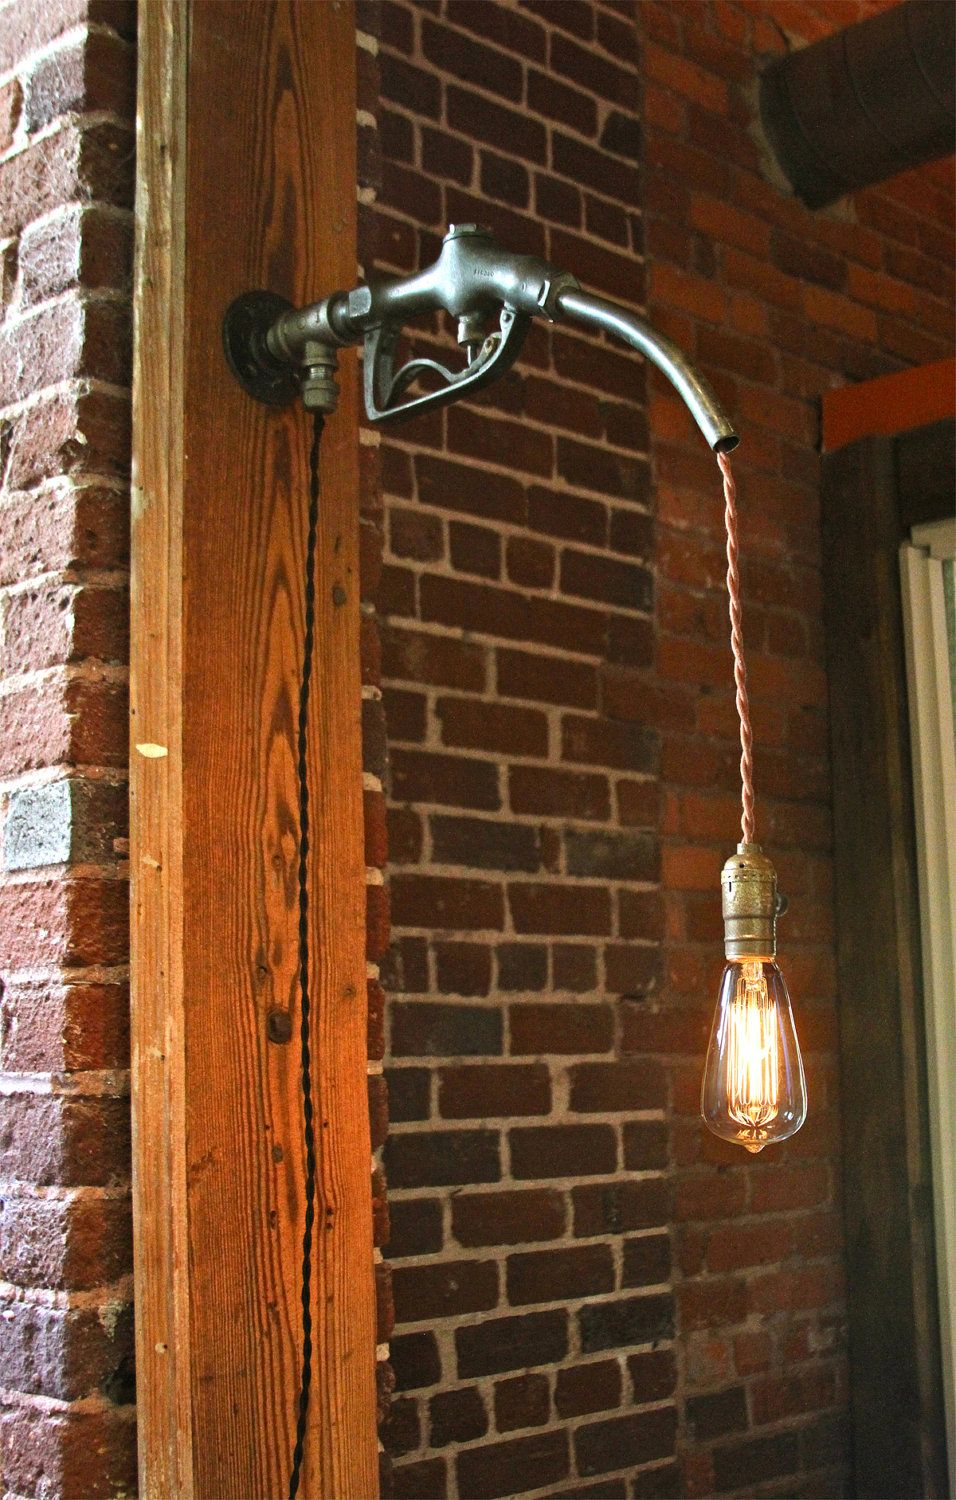 Man Cave Lamps : Another one for the man cave vintage gas pump nozzle